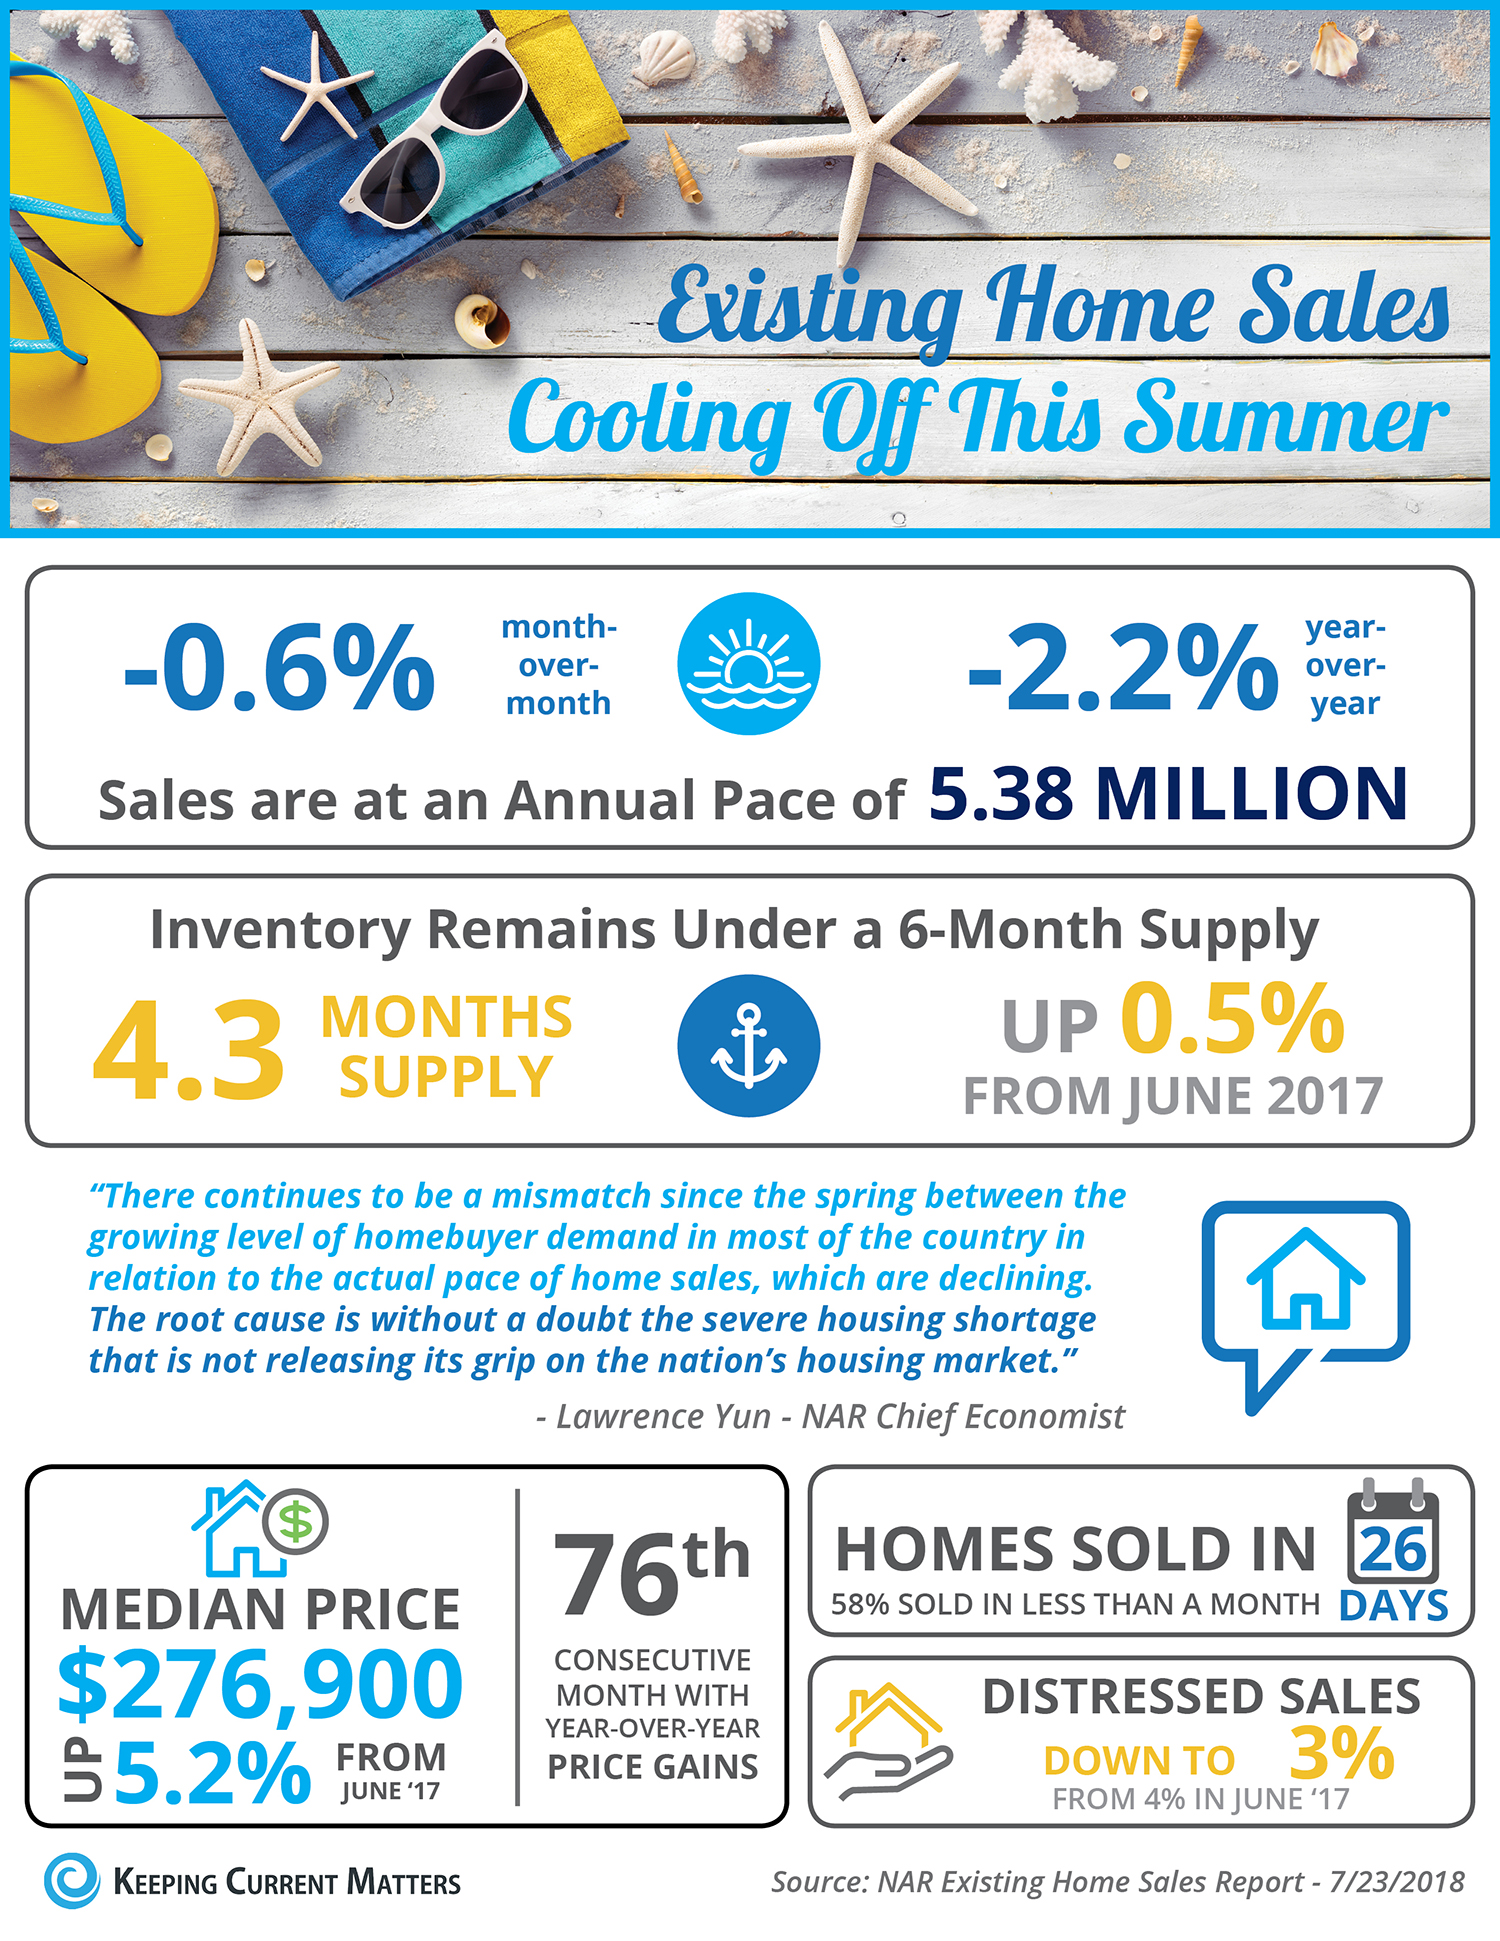 Existing Home Sales Cooling Off This Summer [INFOGRAPHIC] | Keeping Current Matters